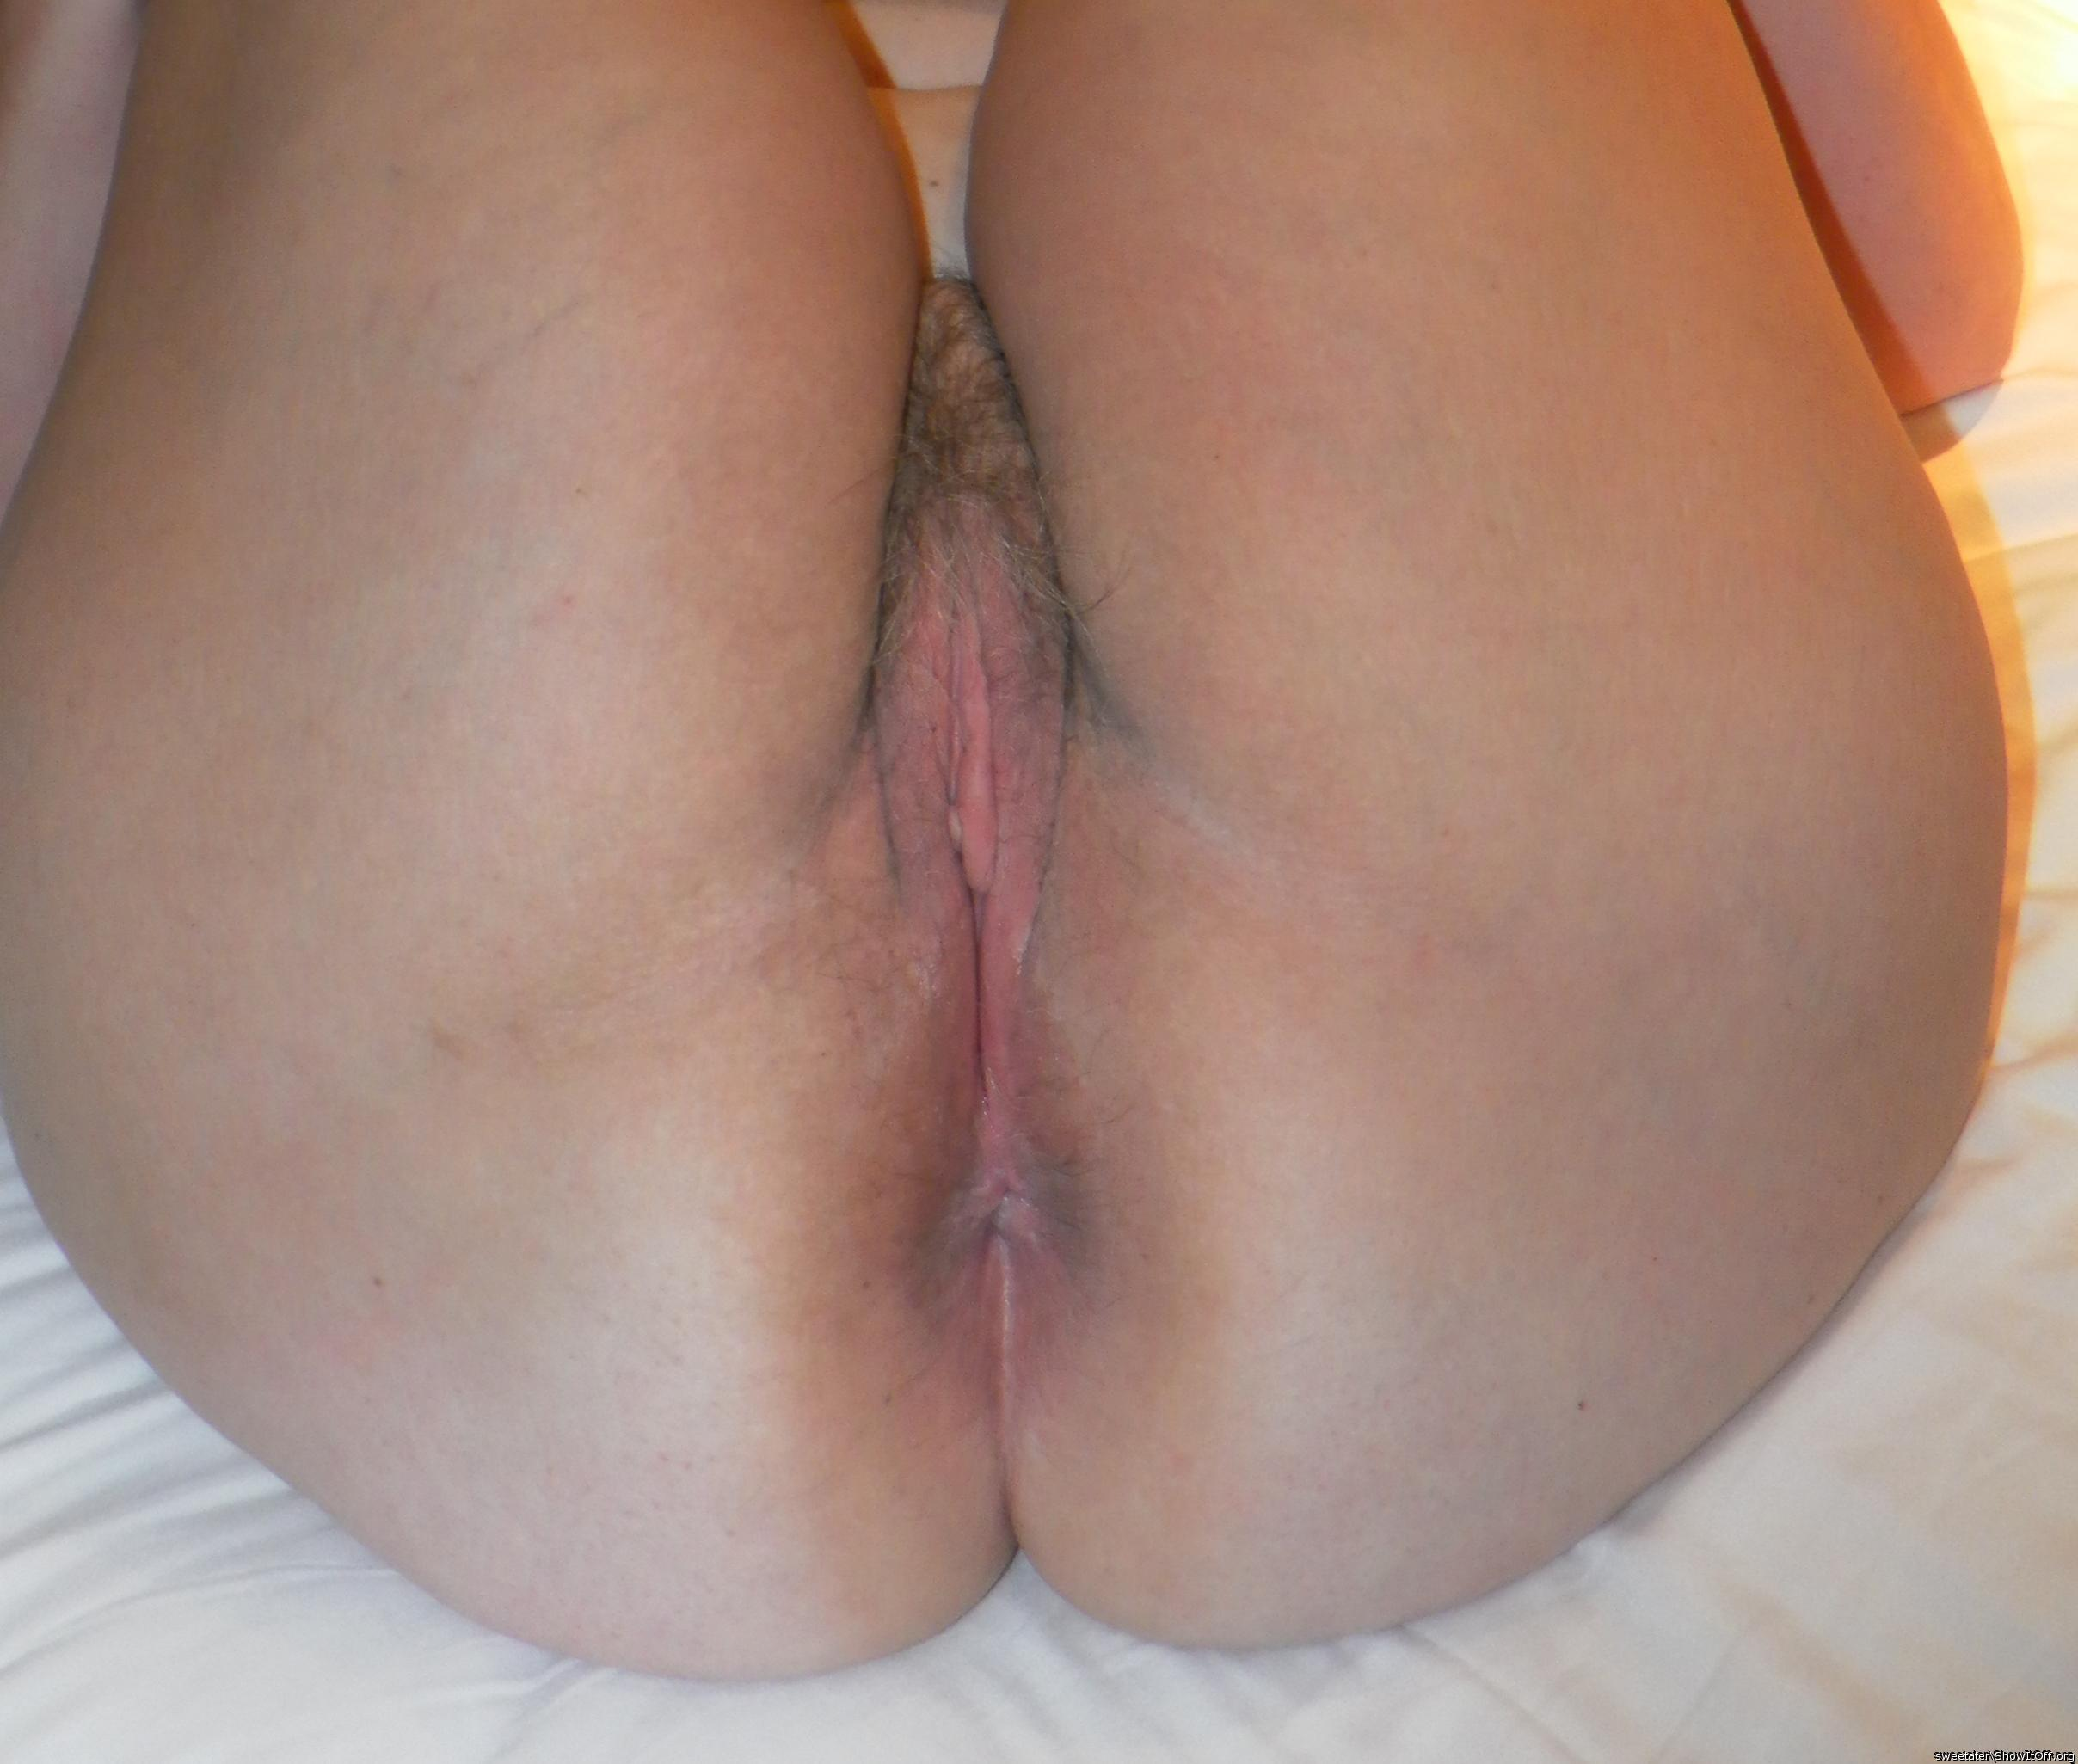 hairy milf that loves being ordered around sexually